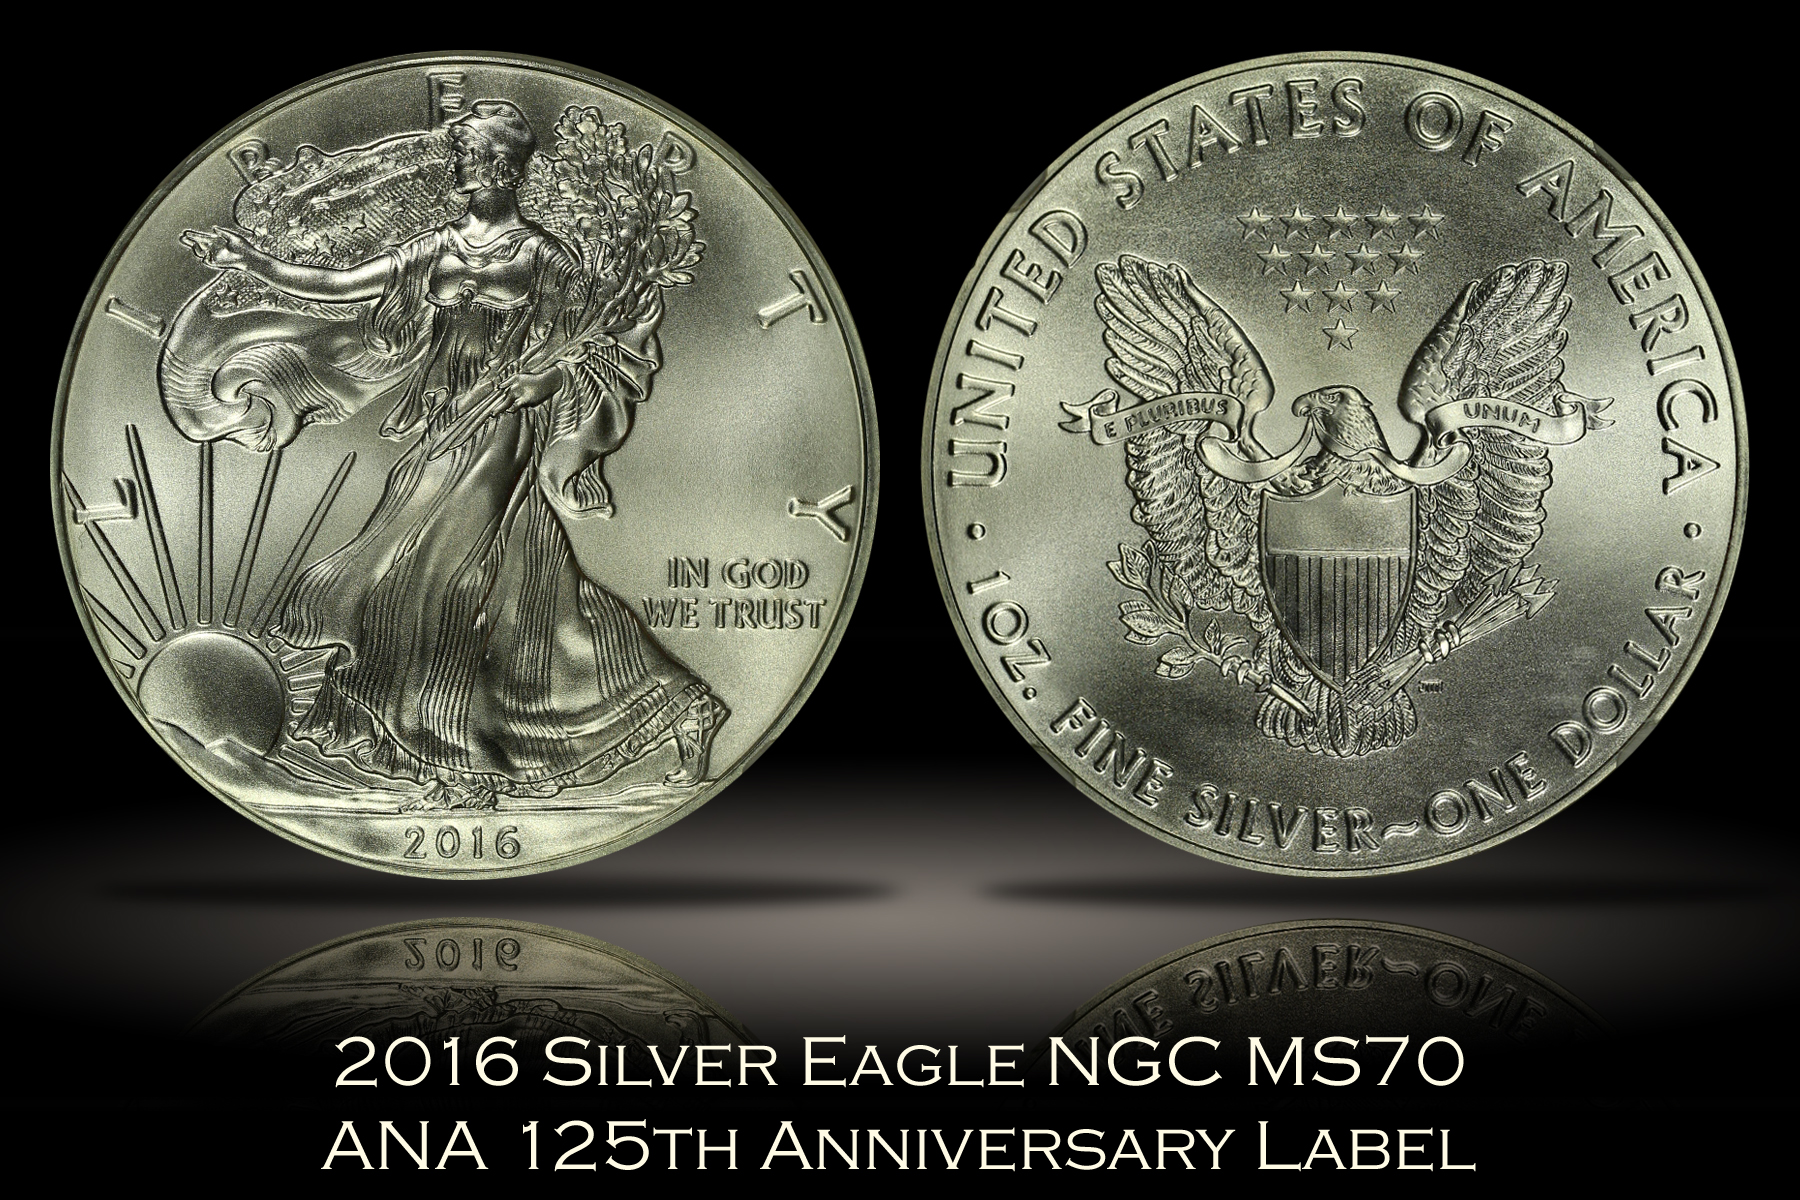 2016 Silver Eagle NGC MS70 ANA 125th Anniversary Label